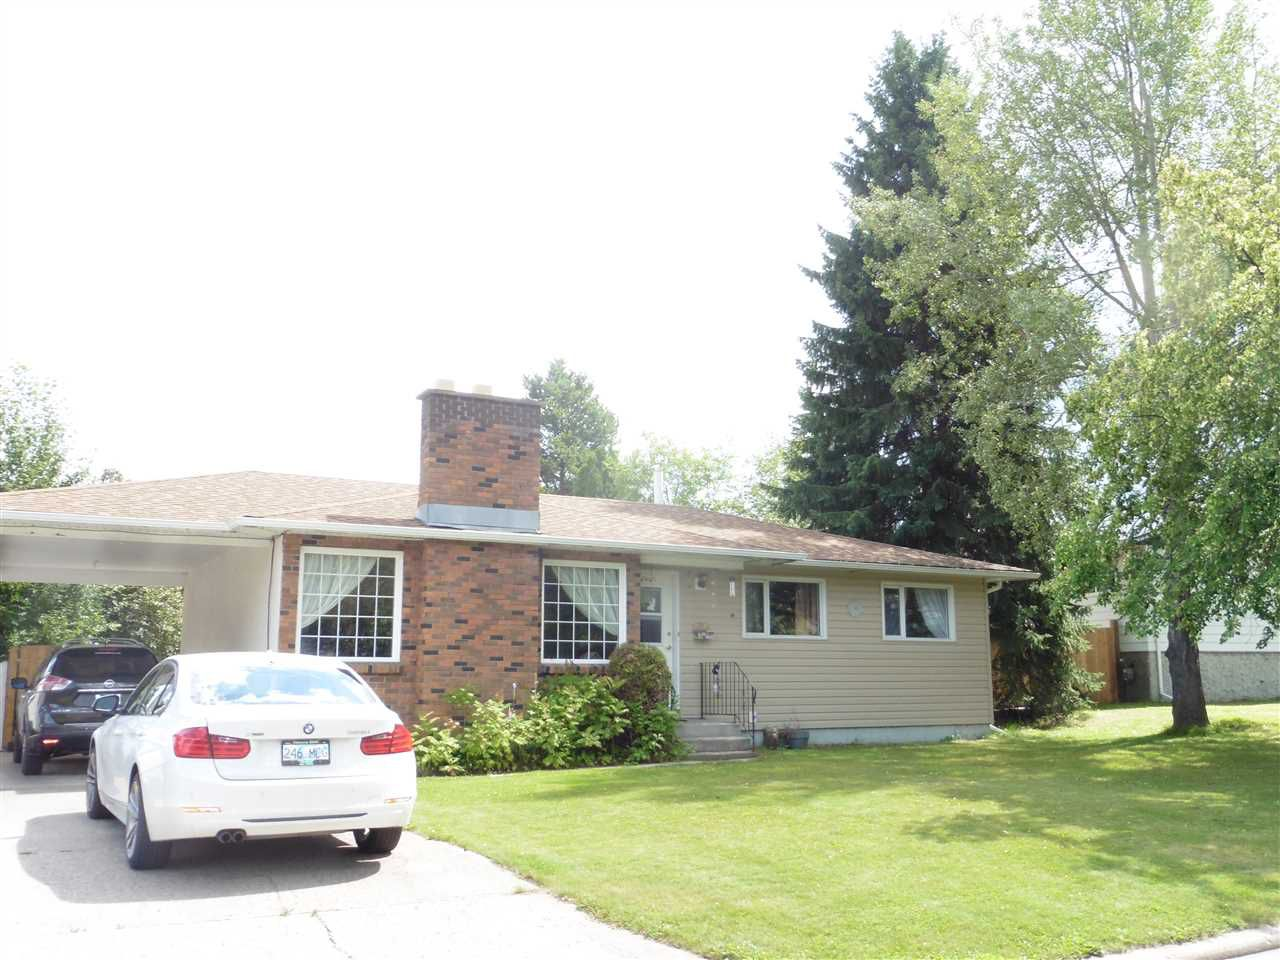 """Photo 1: Photos: 4183 NEHRING Avenue in Prince George: Pinewood House for sale in """"PINEWOOD"""" (PG City West (Zone 71))  : MLS®# R2092741"""